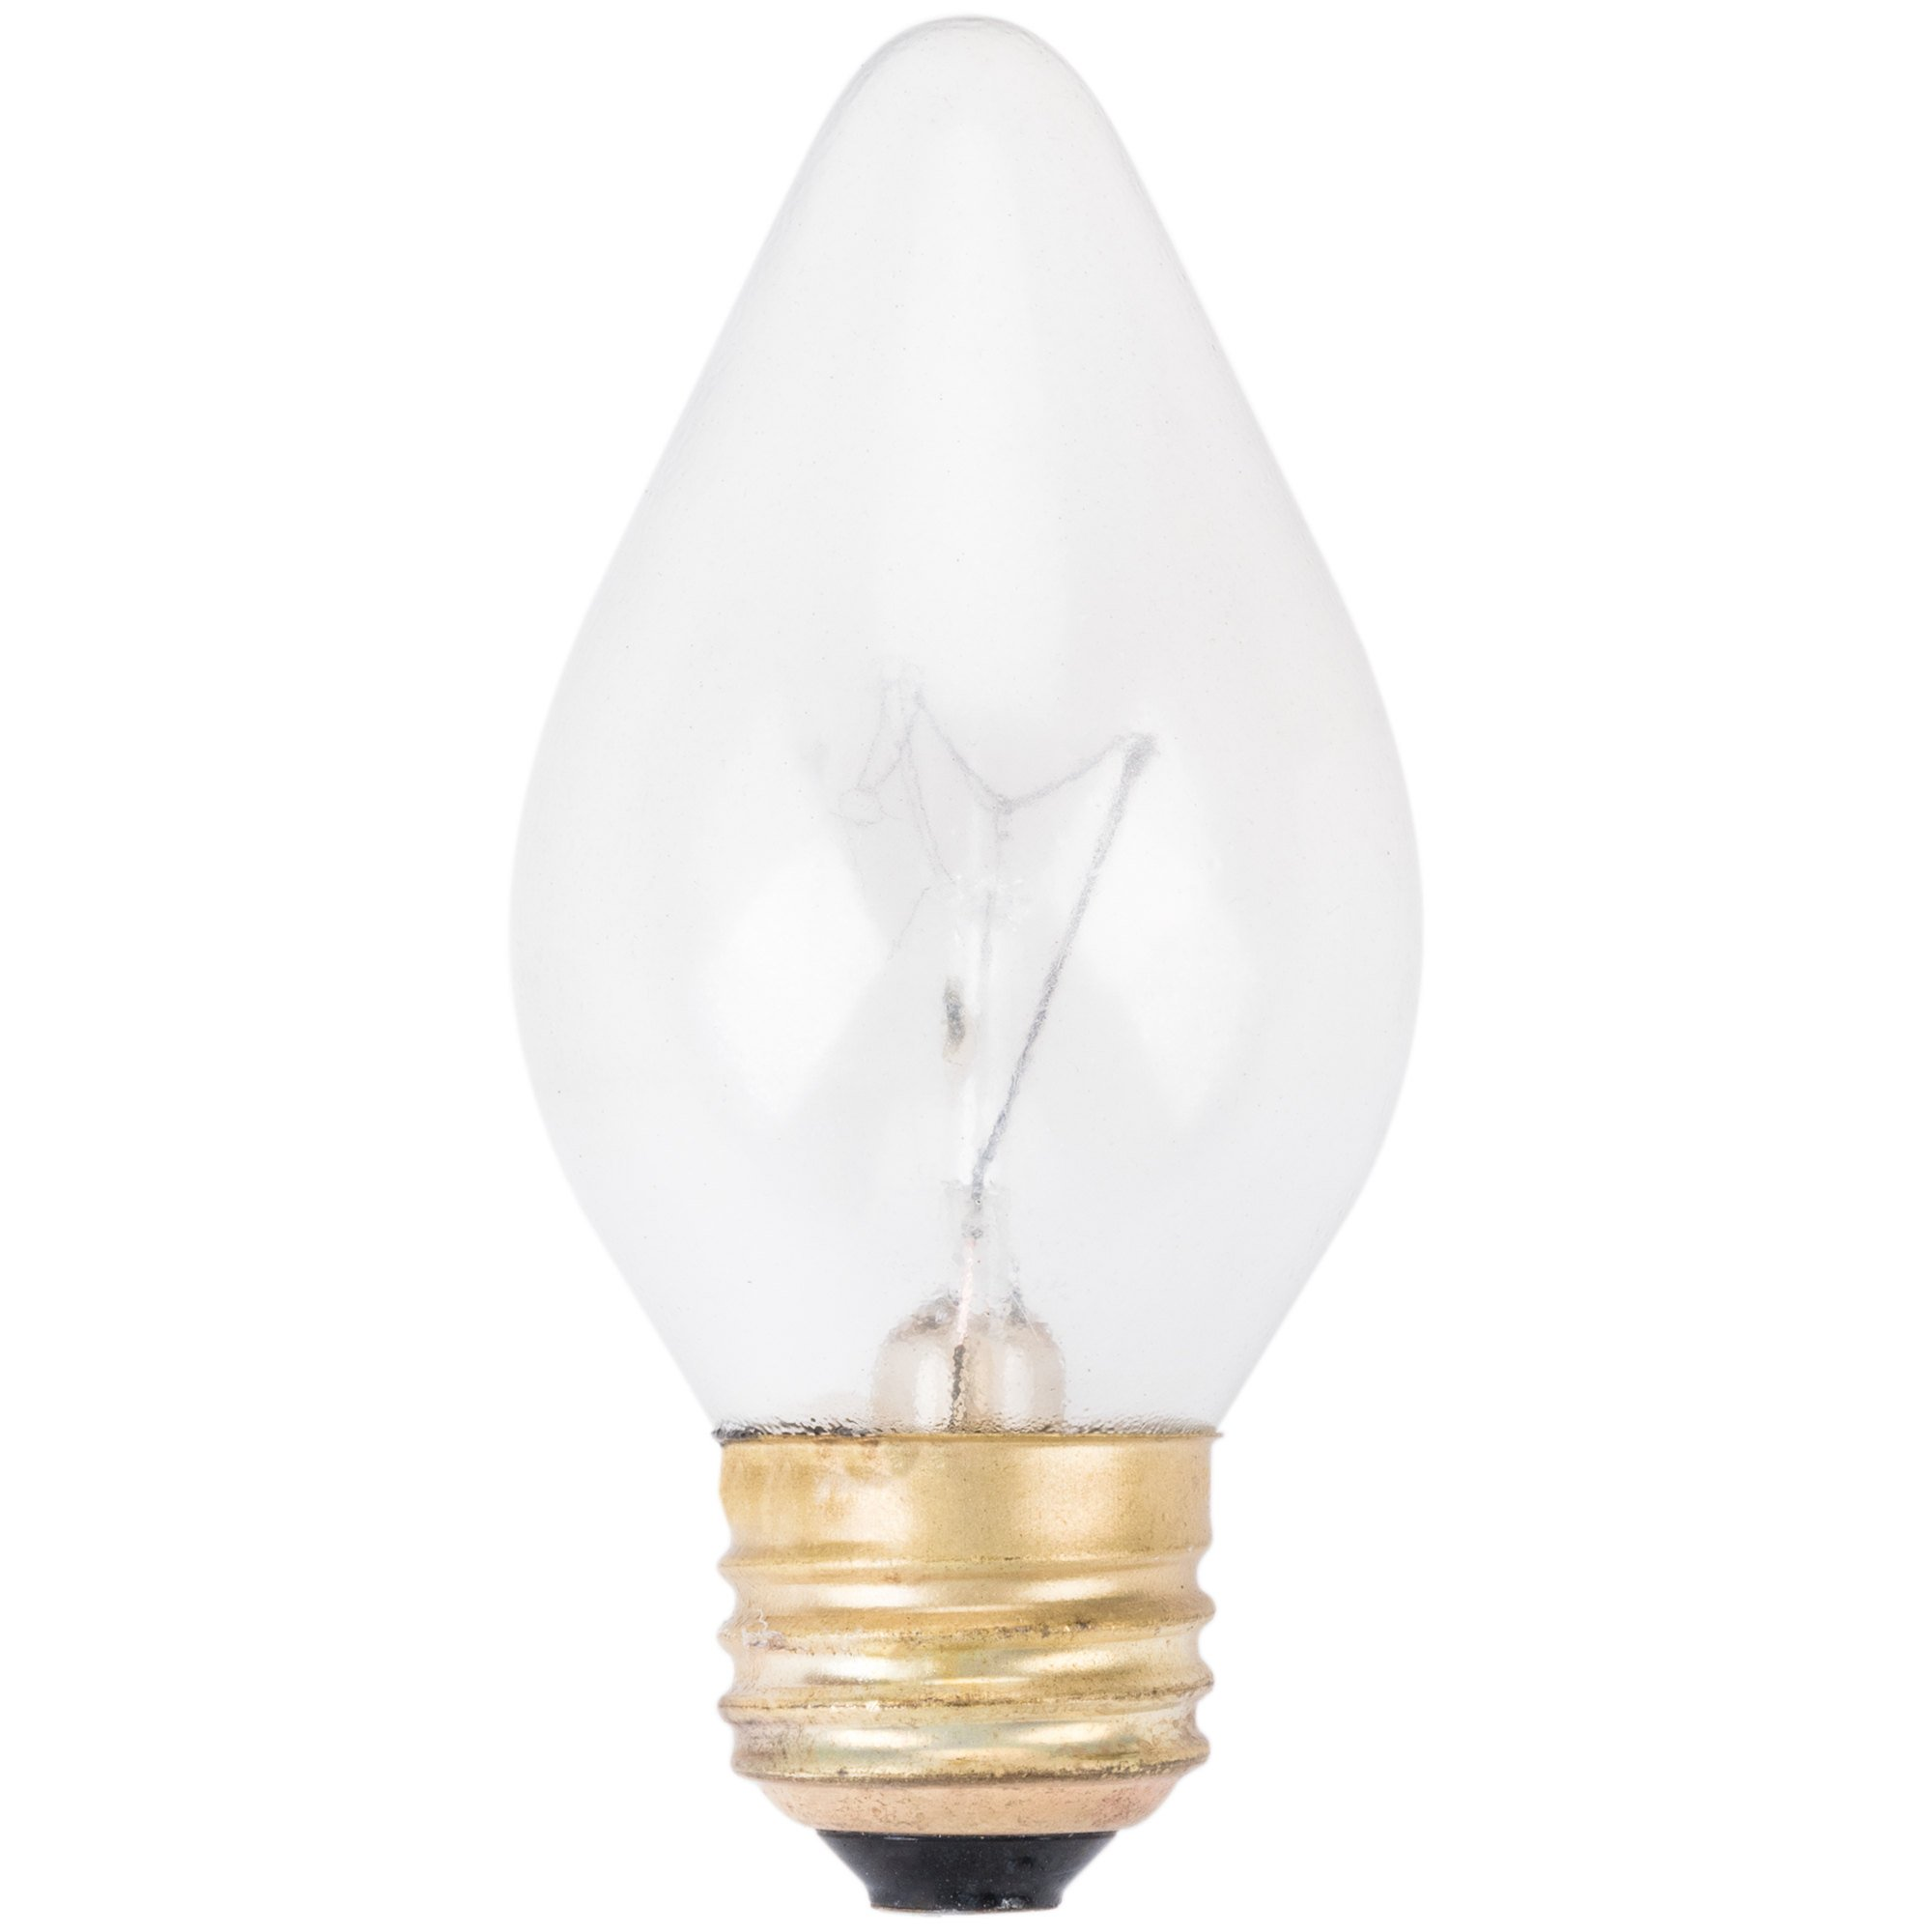 Norman Lamps PFA-60C15CL120Vx15 Shatter Resistant 60W 120V Light Bulb, Degrees_Fahrenheit, to Volts, Amps, (Pack of 15)